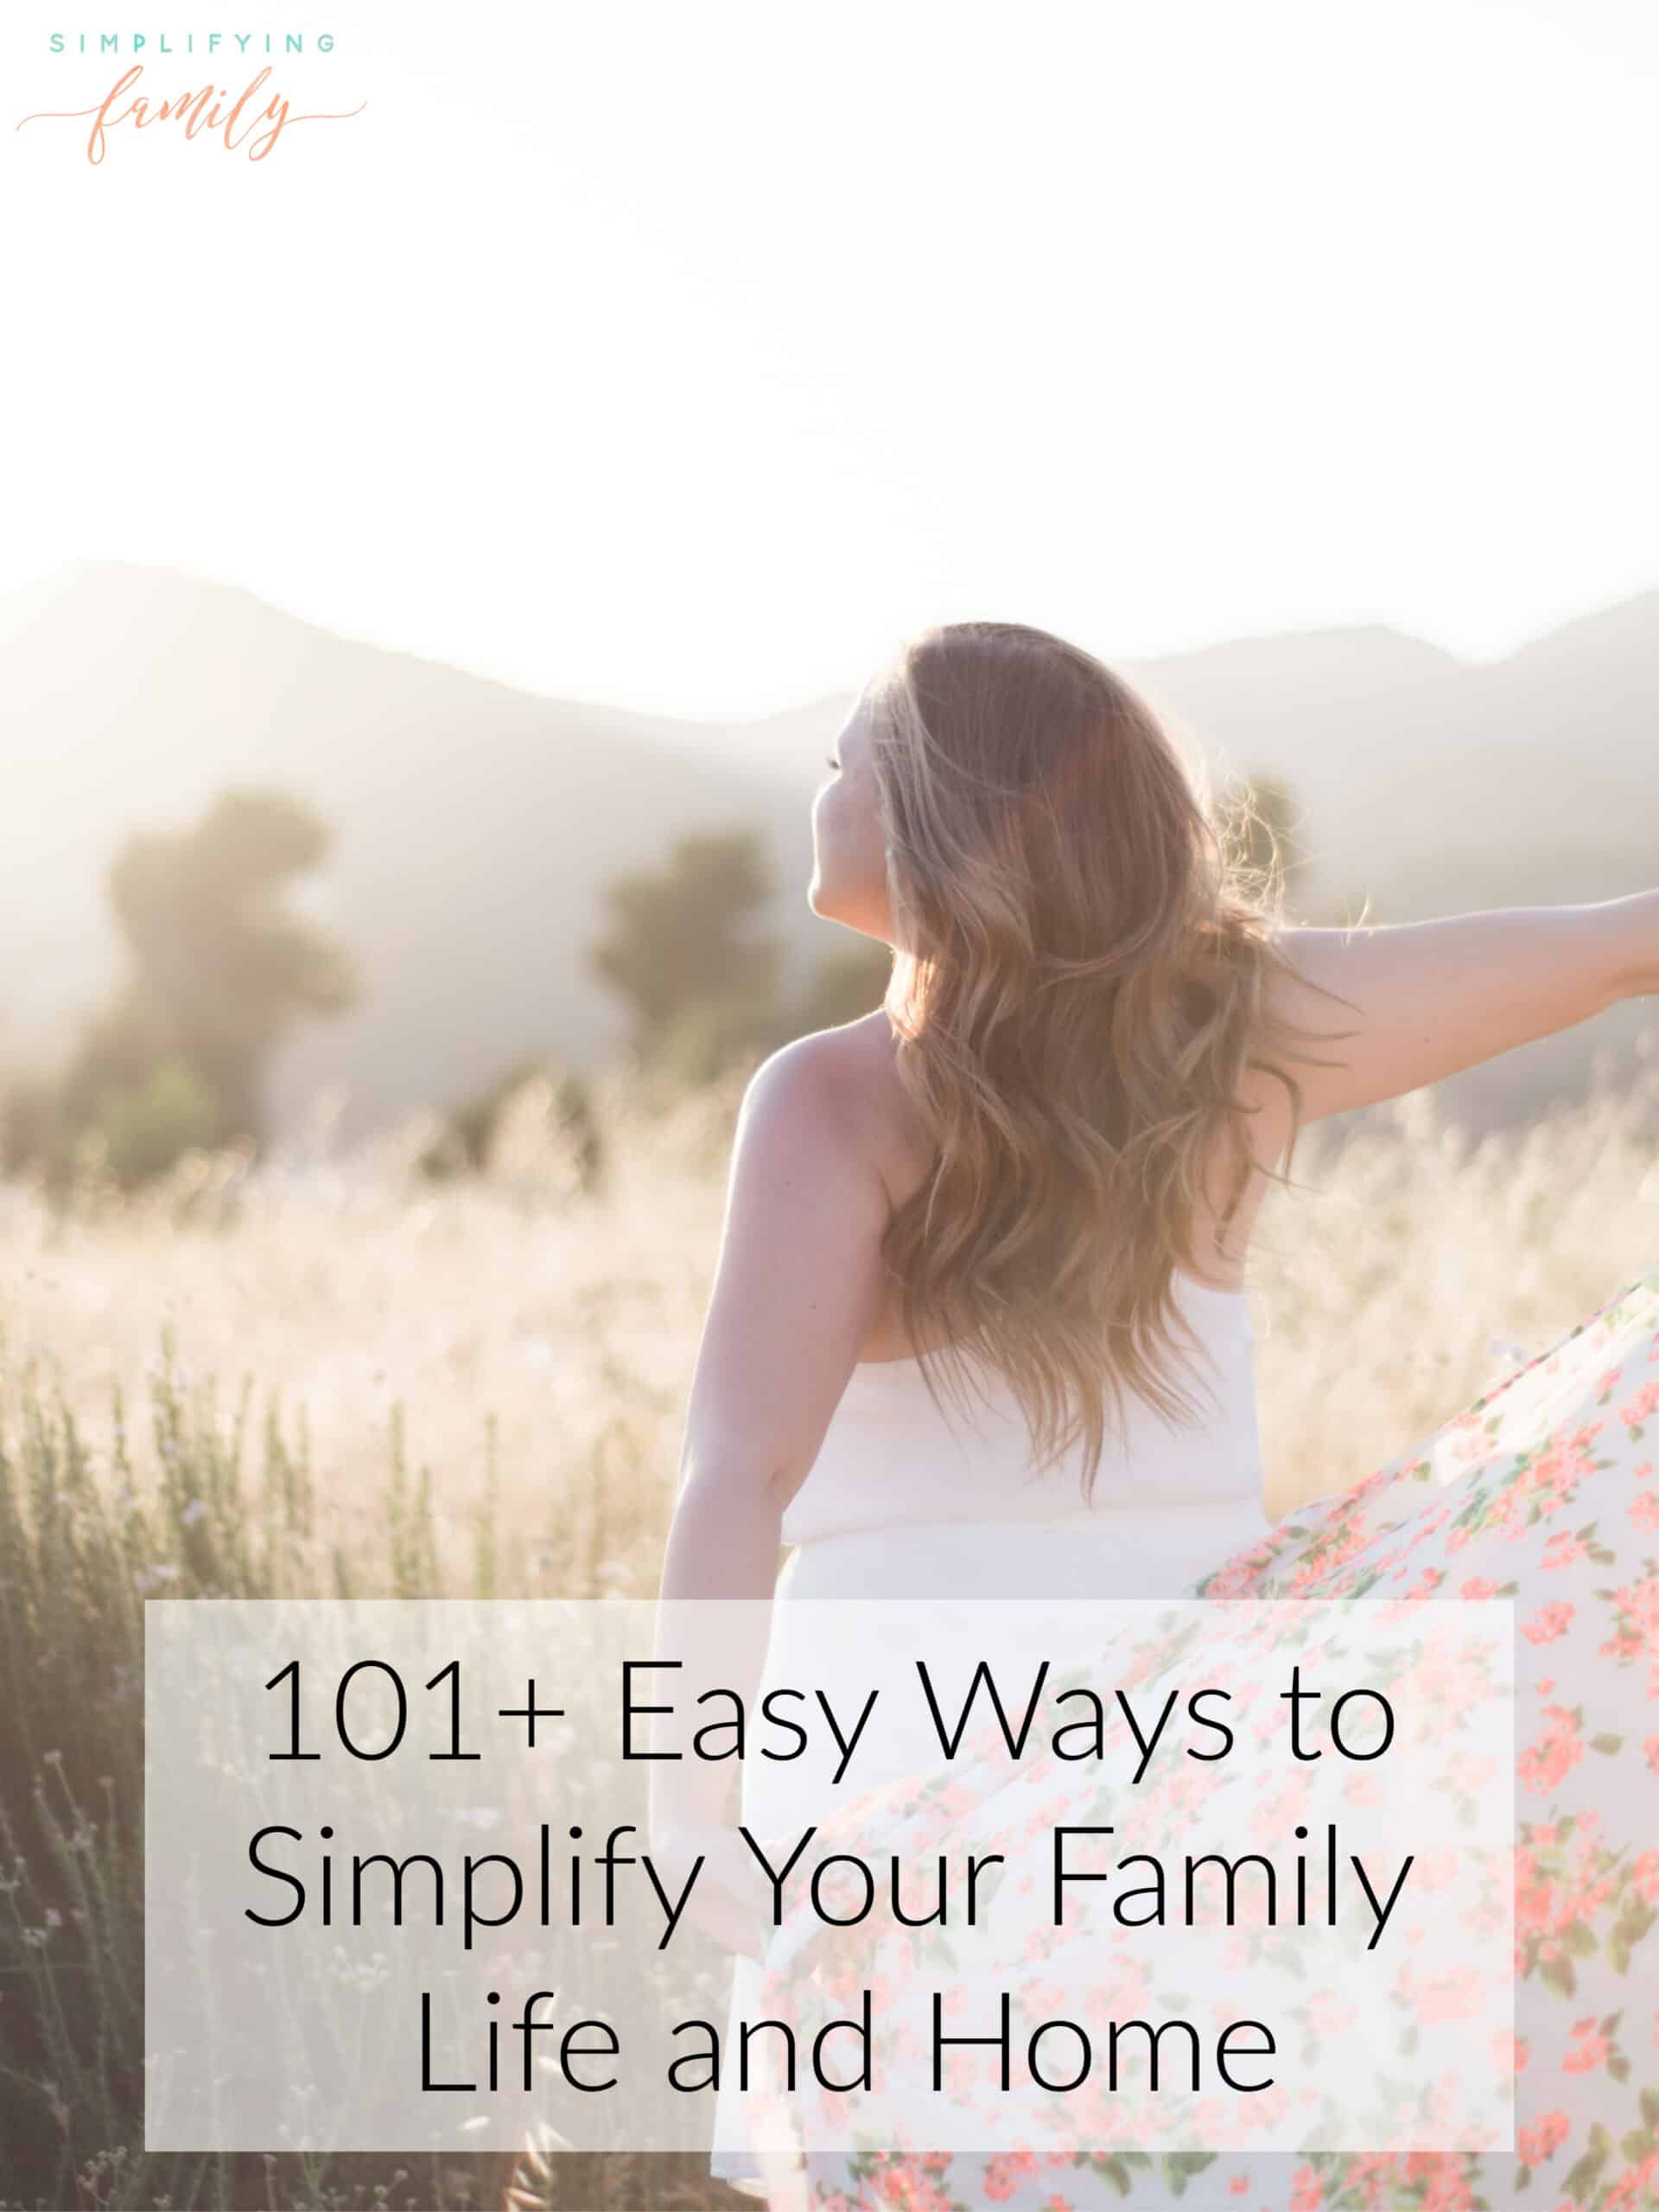 When you're overwhelmed, it's hard to see what you should and shouldn't be doing. Here are 100+ easy ways you can simplify your life and home. #minimalism #simplifyingfamily #simplifylife #simplemom #simplemotherhood via @simplifyingfamily